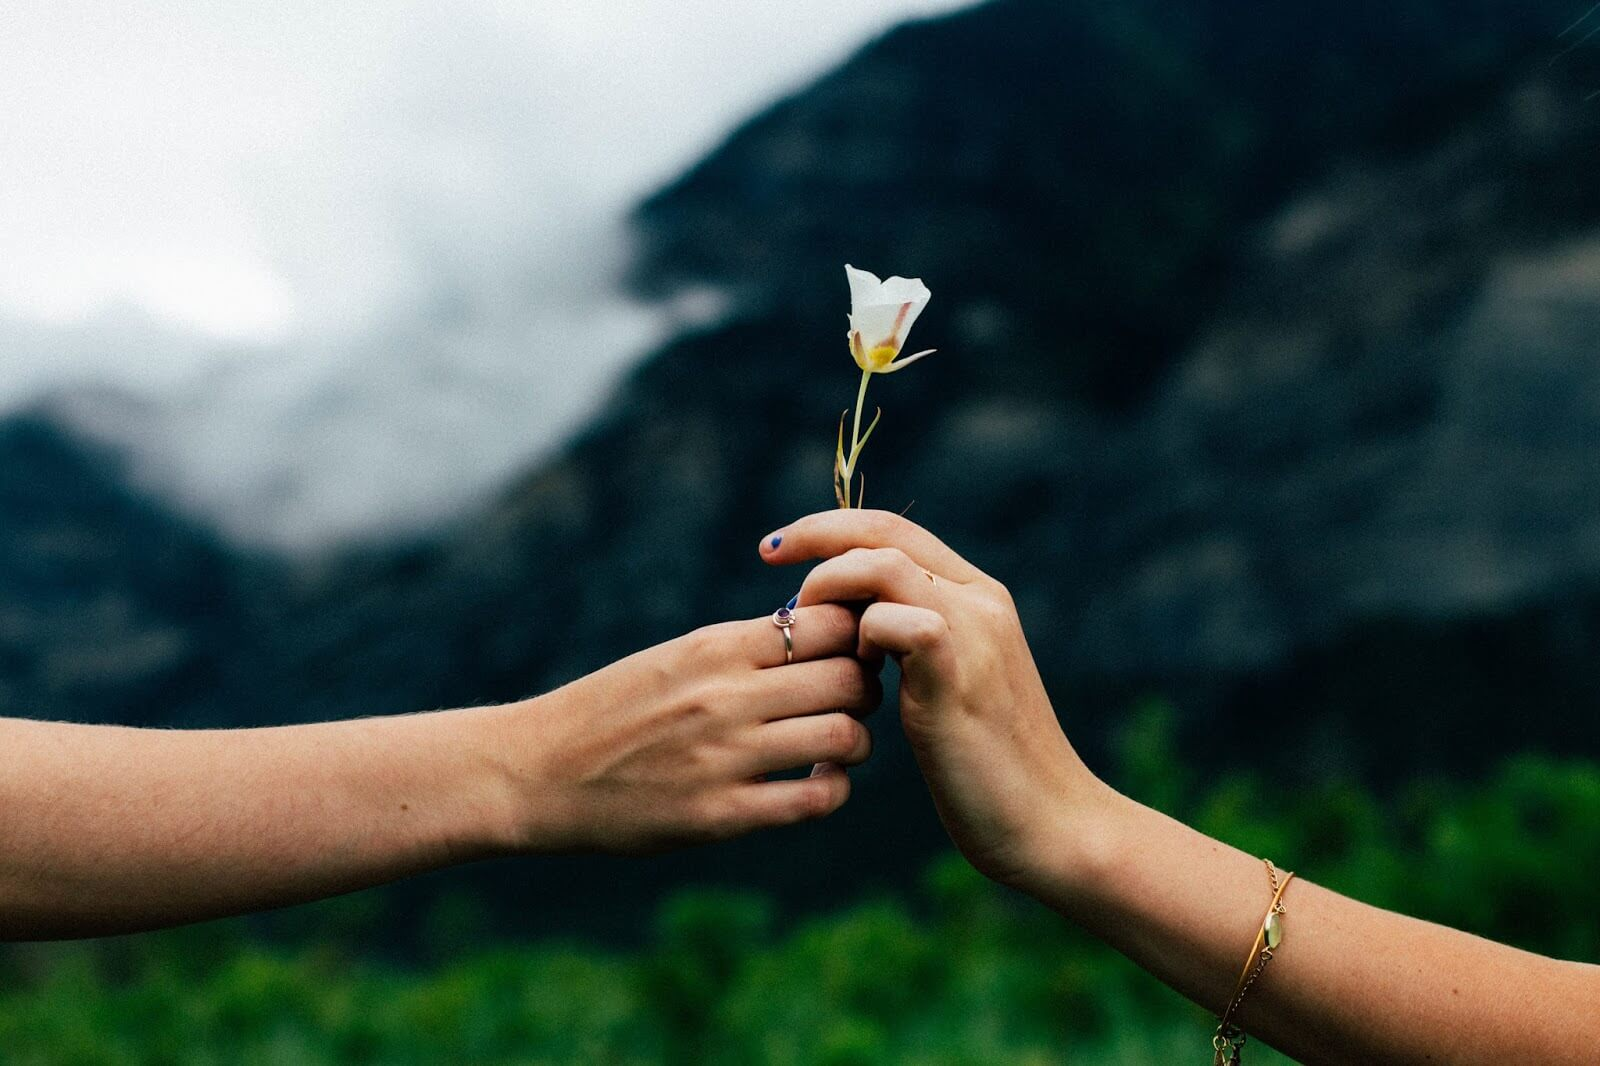 relationship problems - two women handing a flower to one another against a mountain backdrop